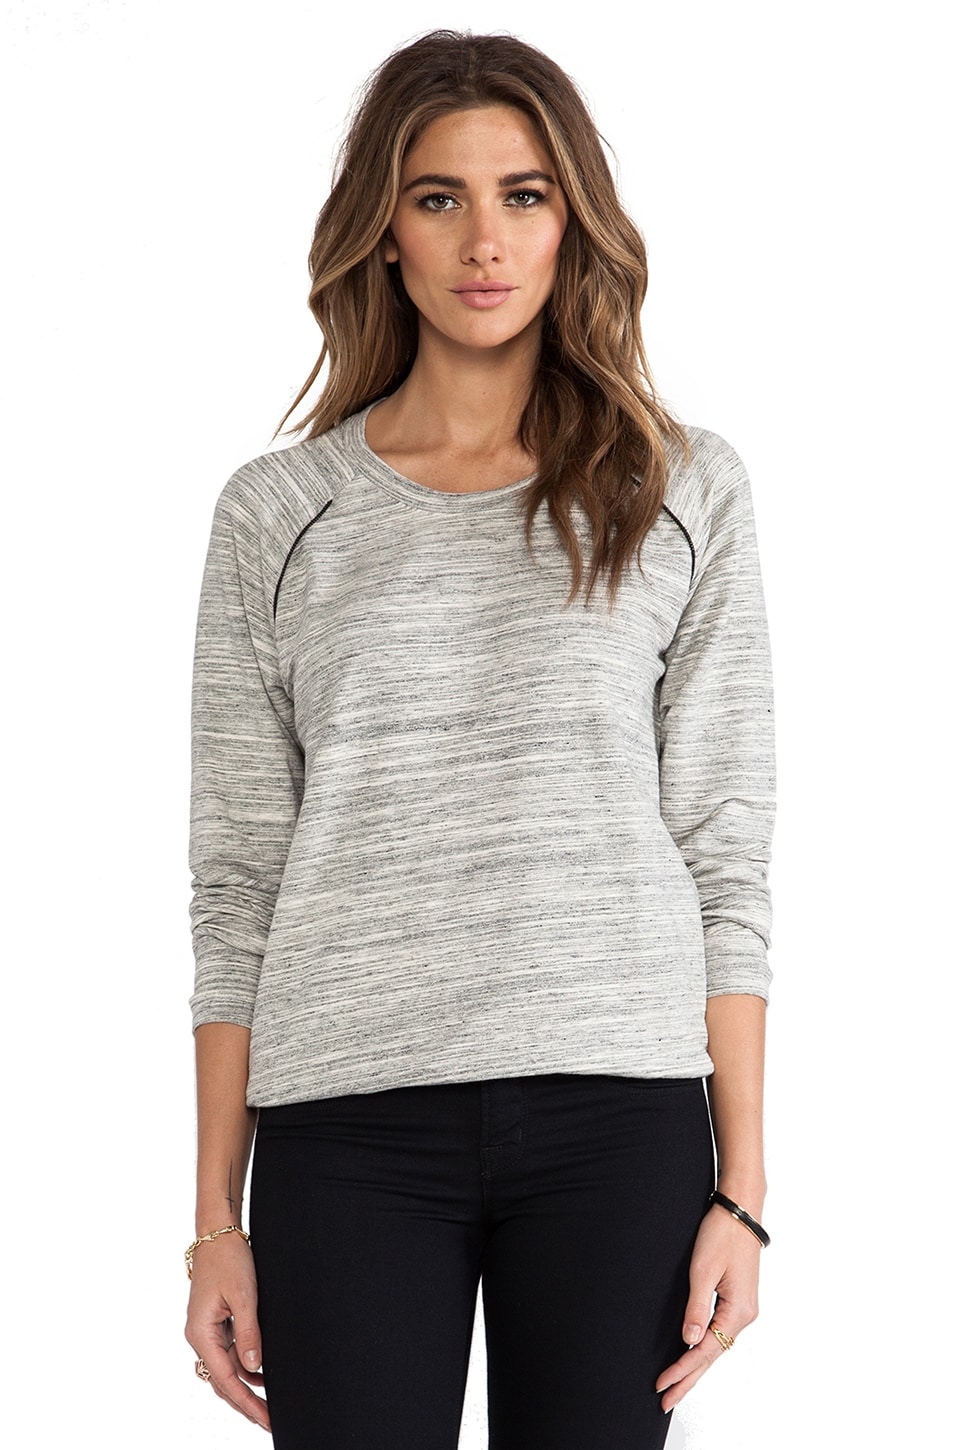 Kain Woodsin Sweatshirt in White Space Dye